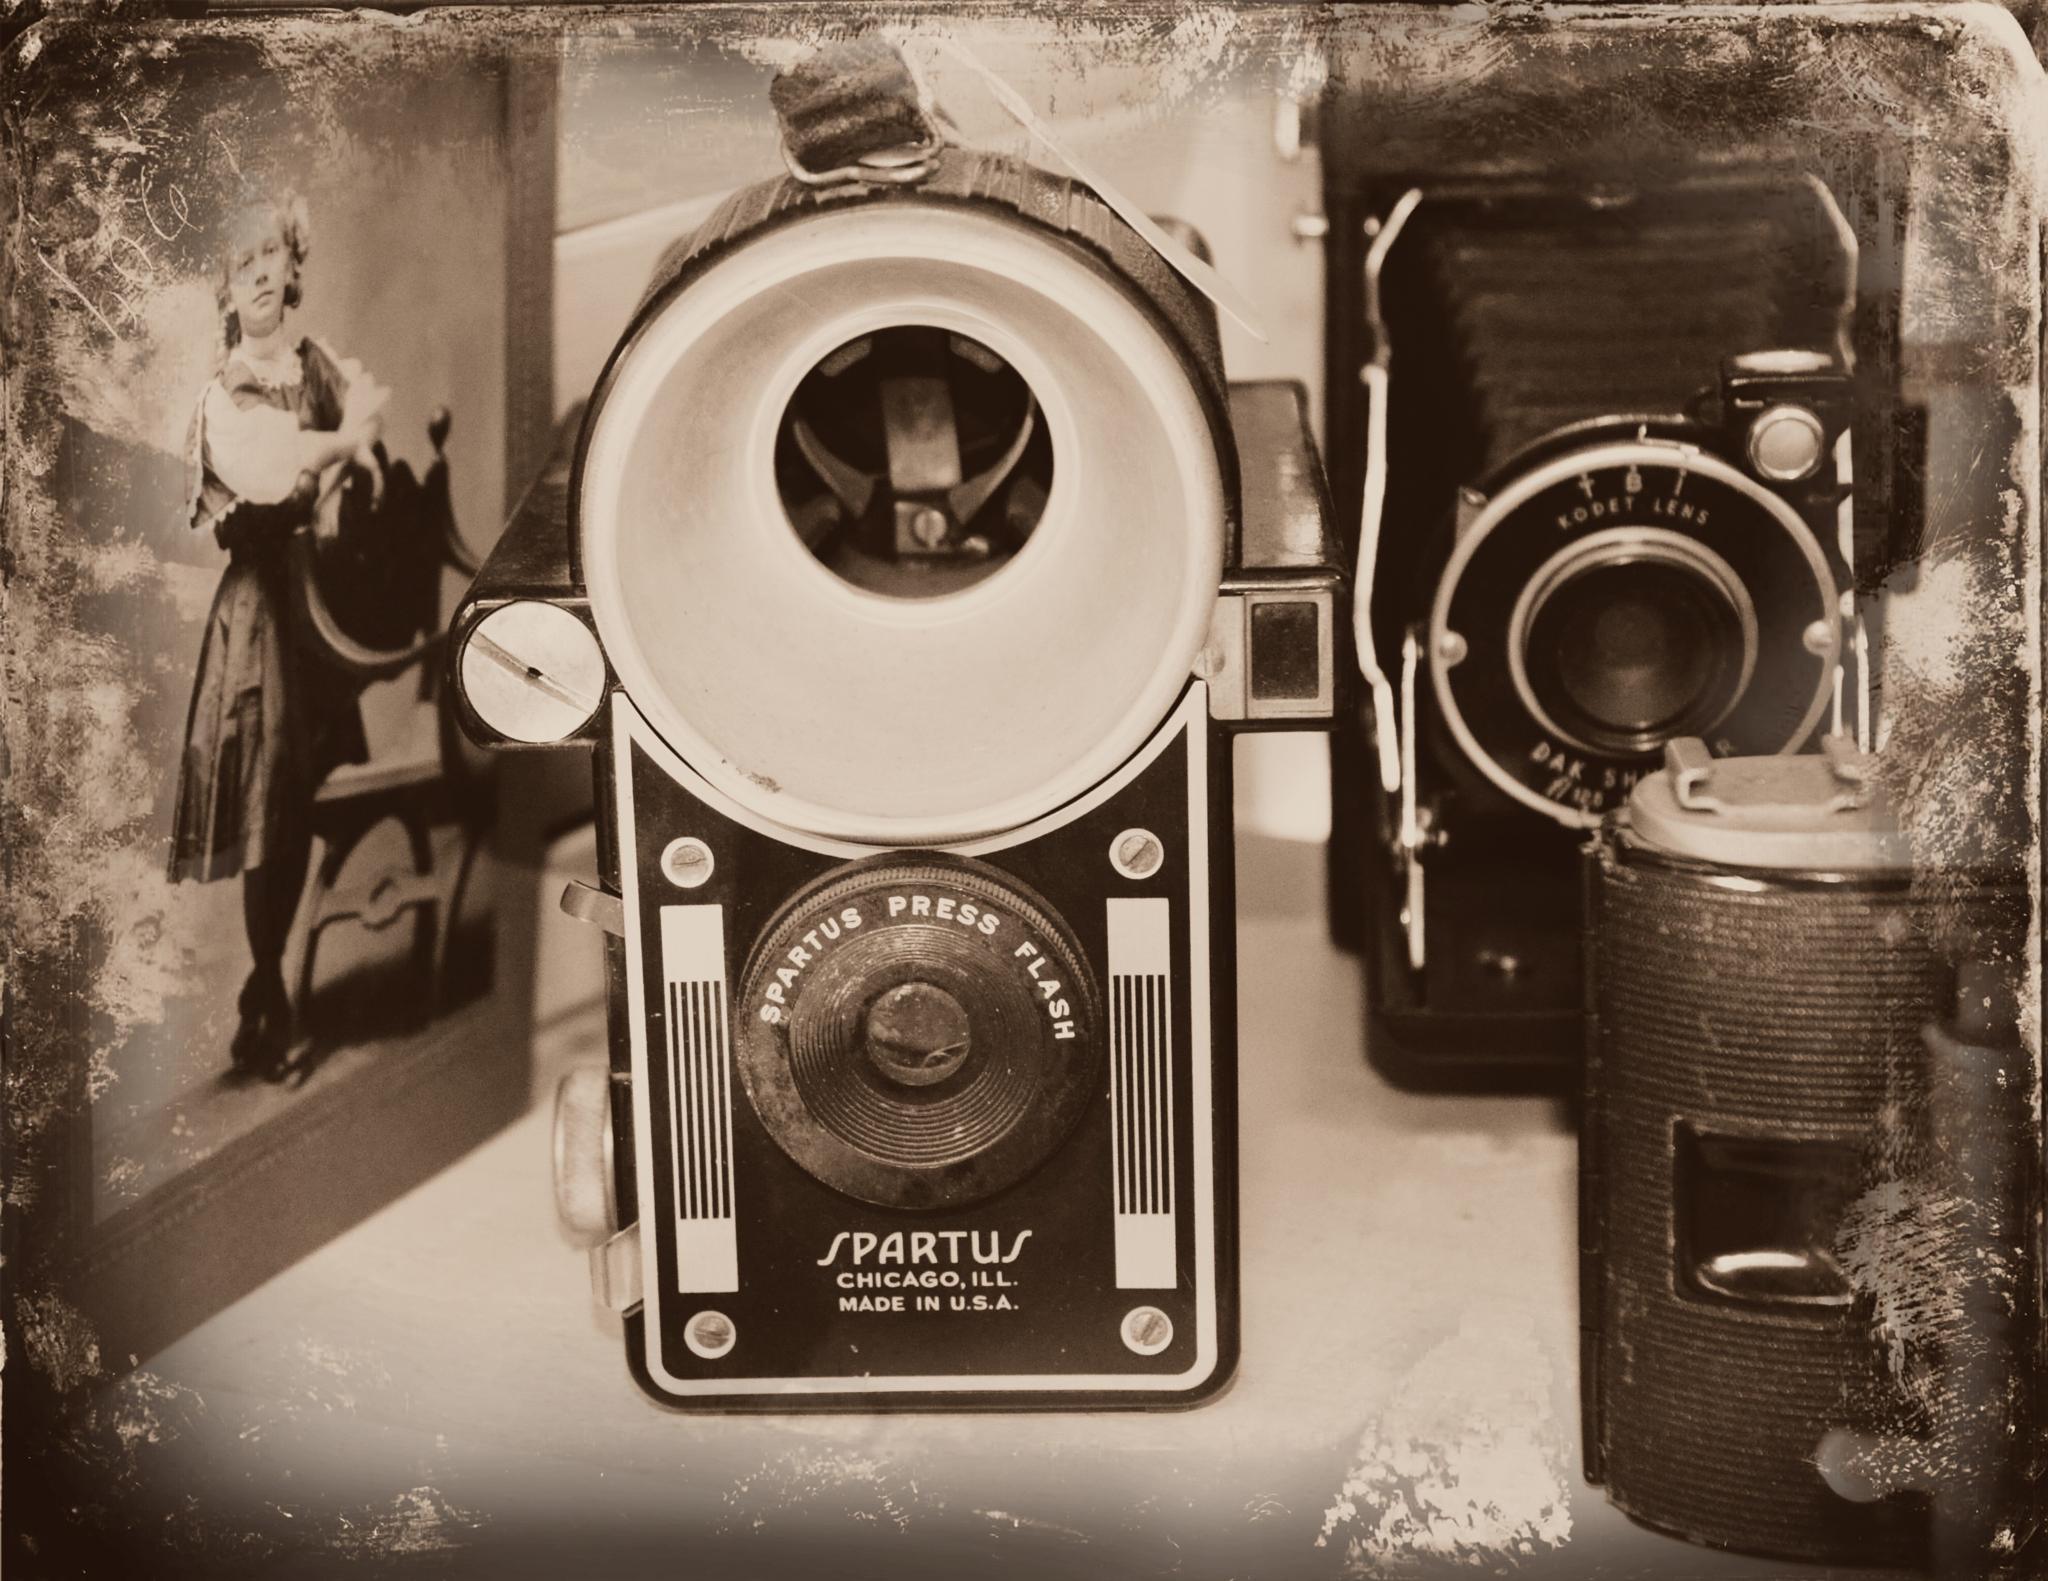 Old Cameras at the Flea Market by Grace Lee